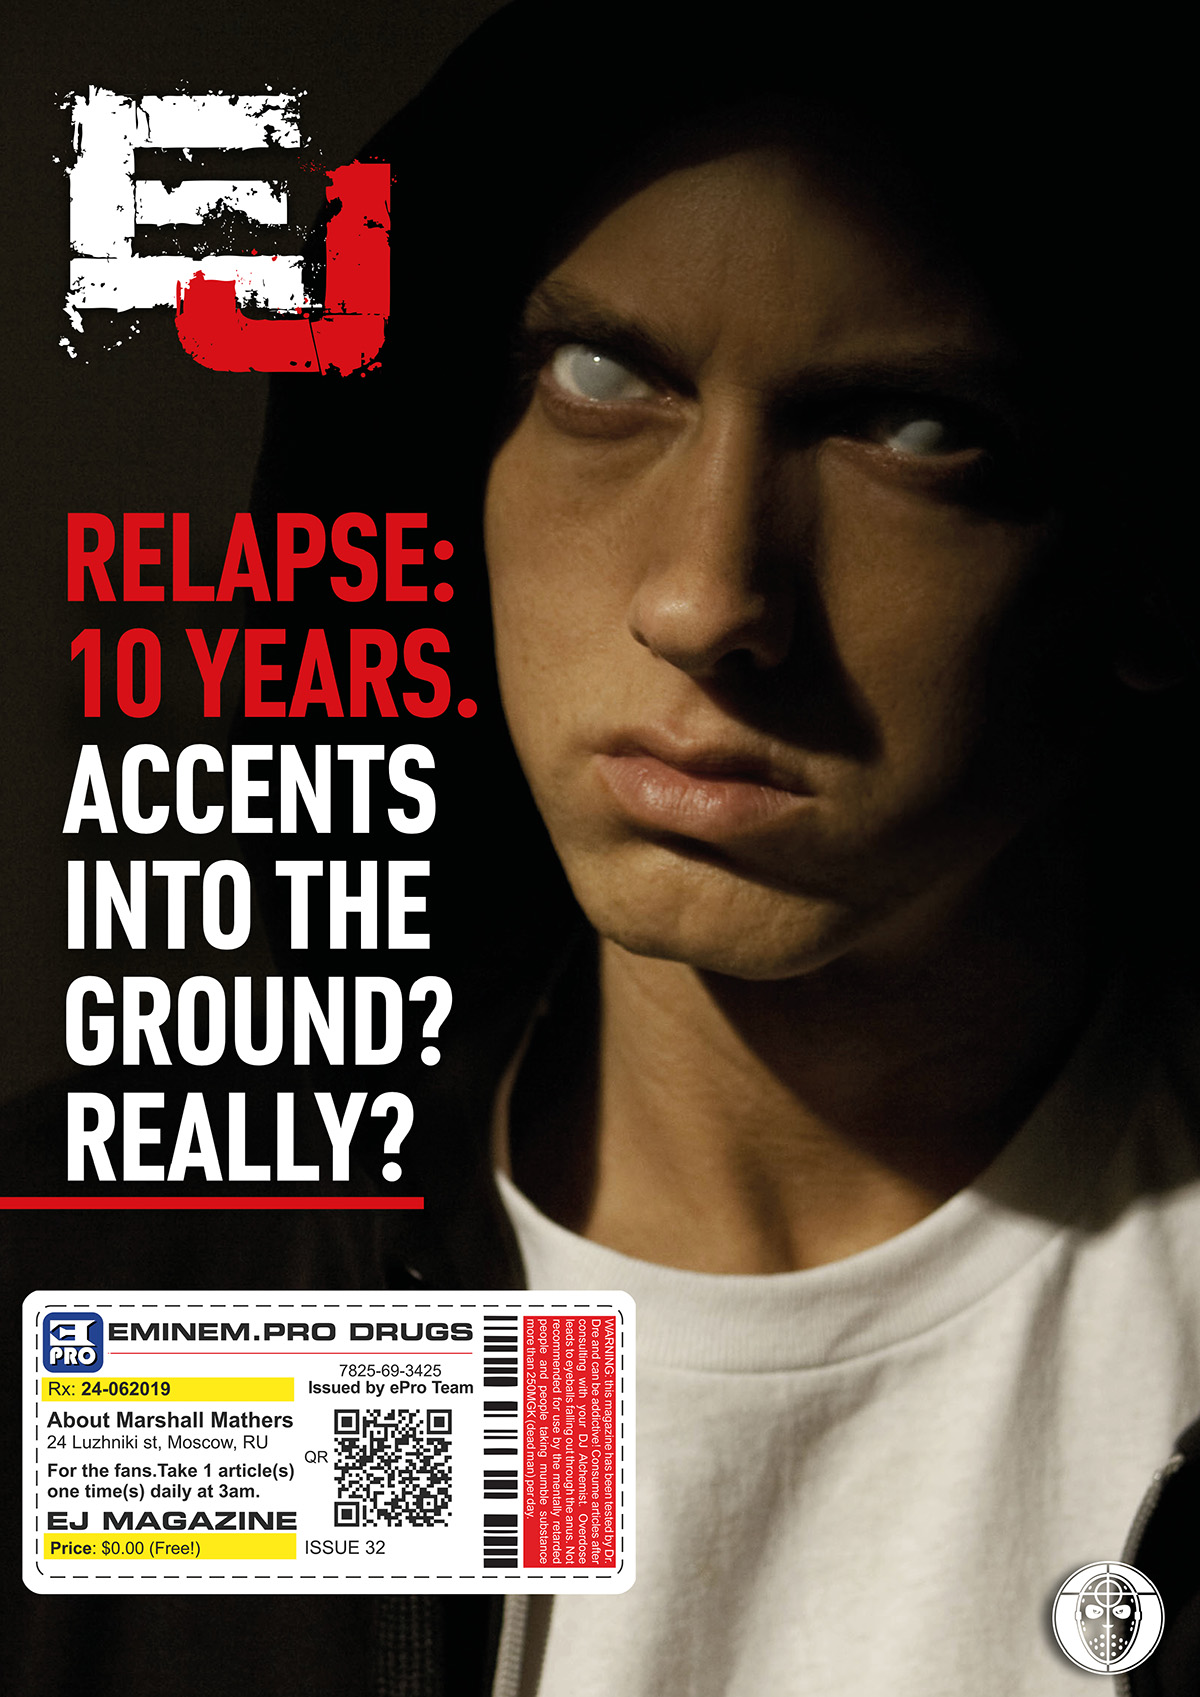 EJ Magazine #32 Cover 2 ePro Exclusive